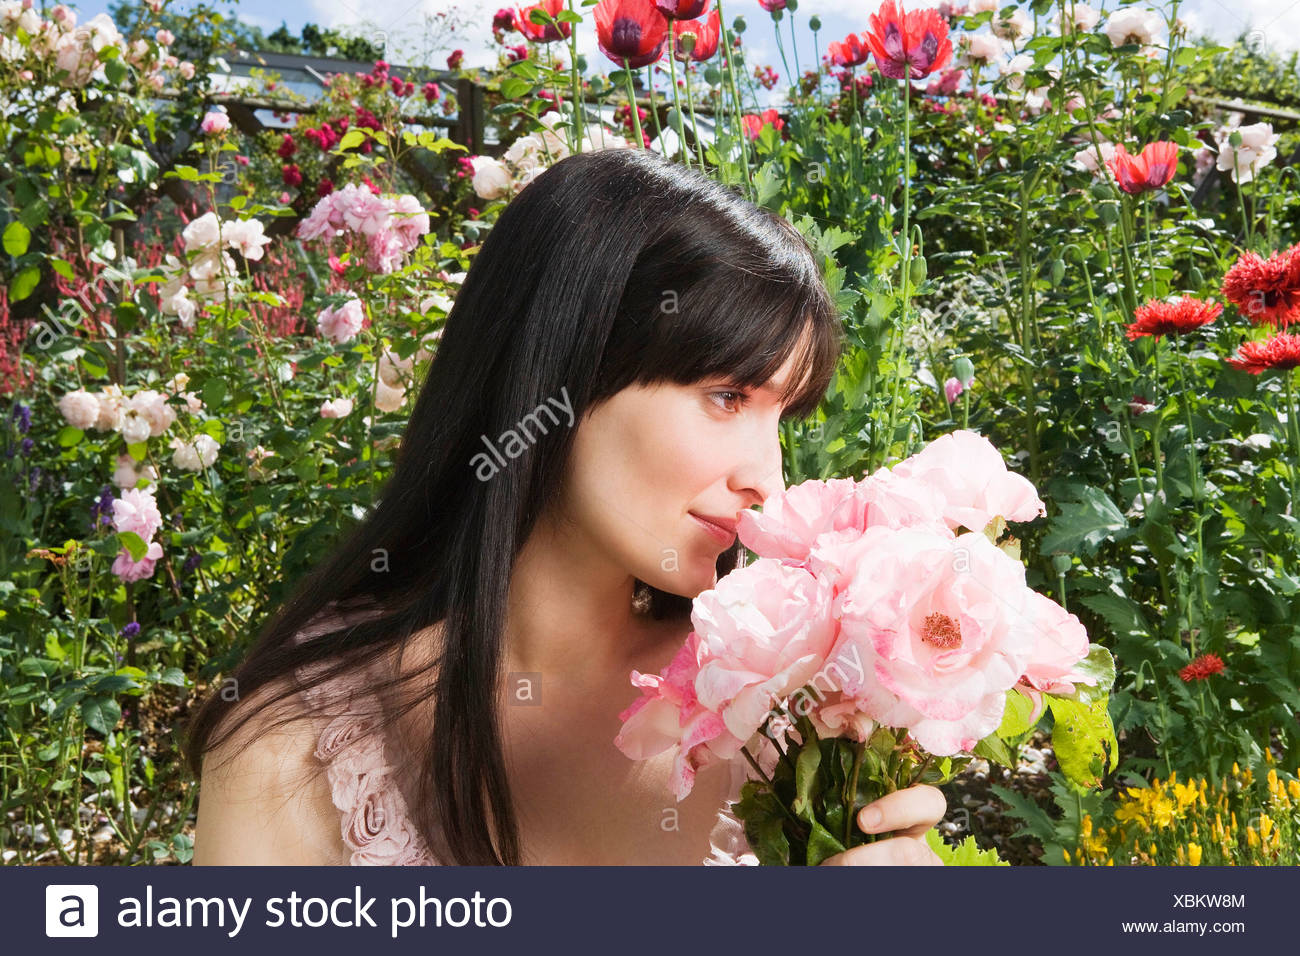 Woman smelling roses in garden - Stock Image